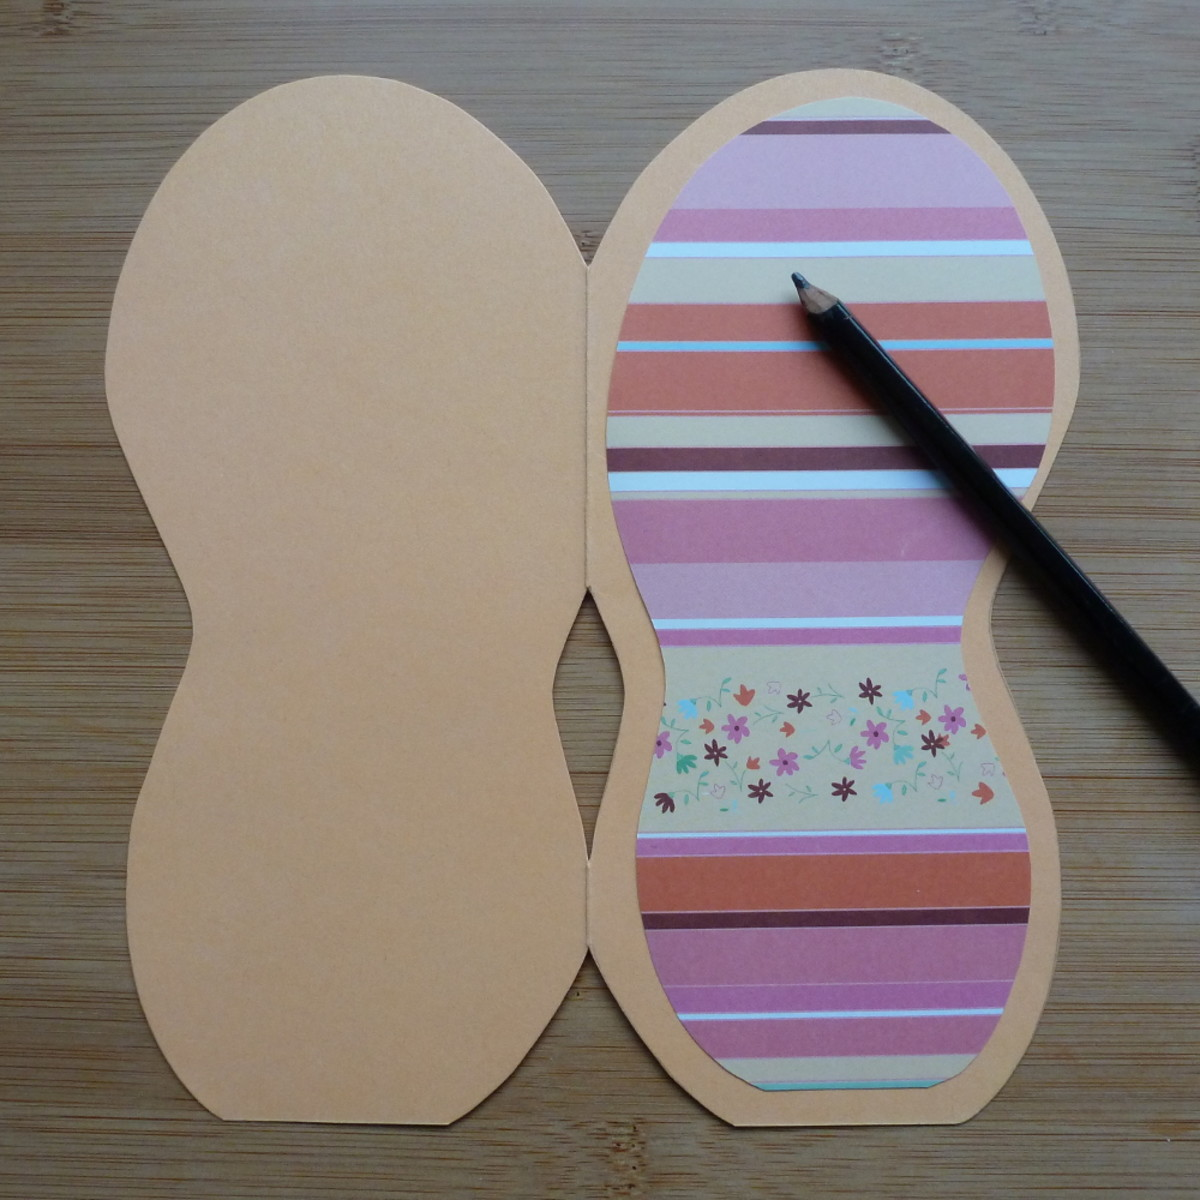 Making a traditional card style with the flip flop pattern